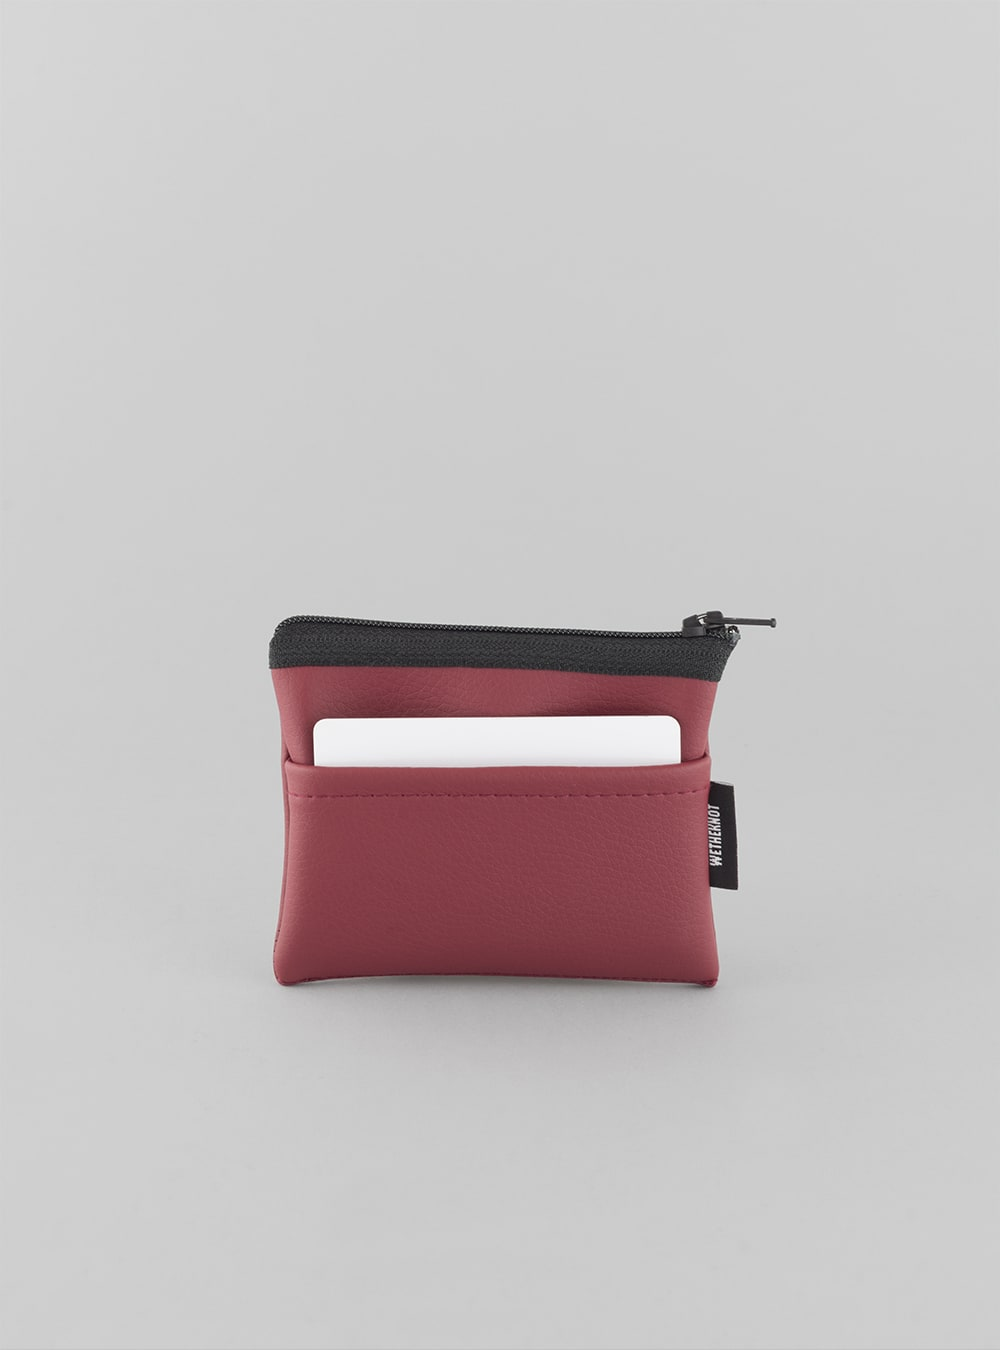 Card holder (cherry) in vegan leather, made in Portugal by wetheknot.